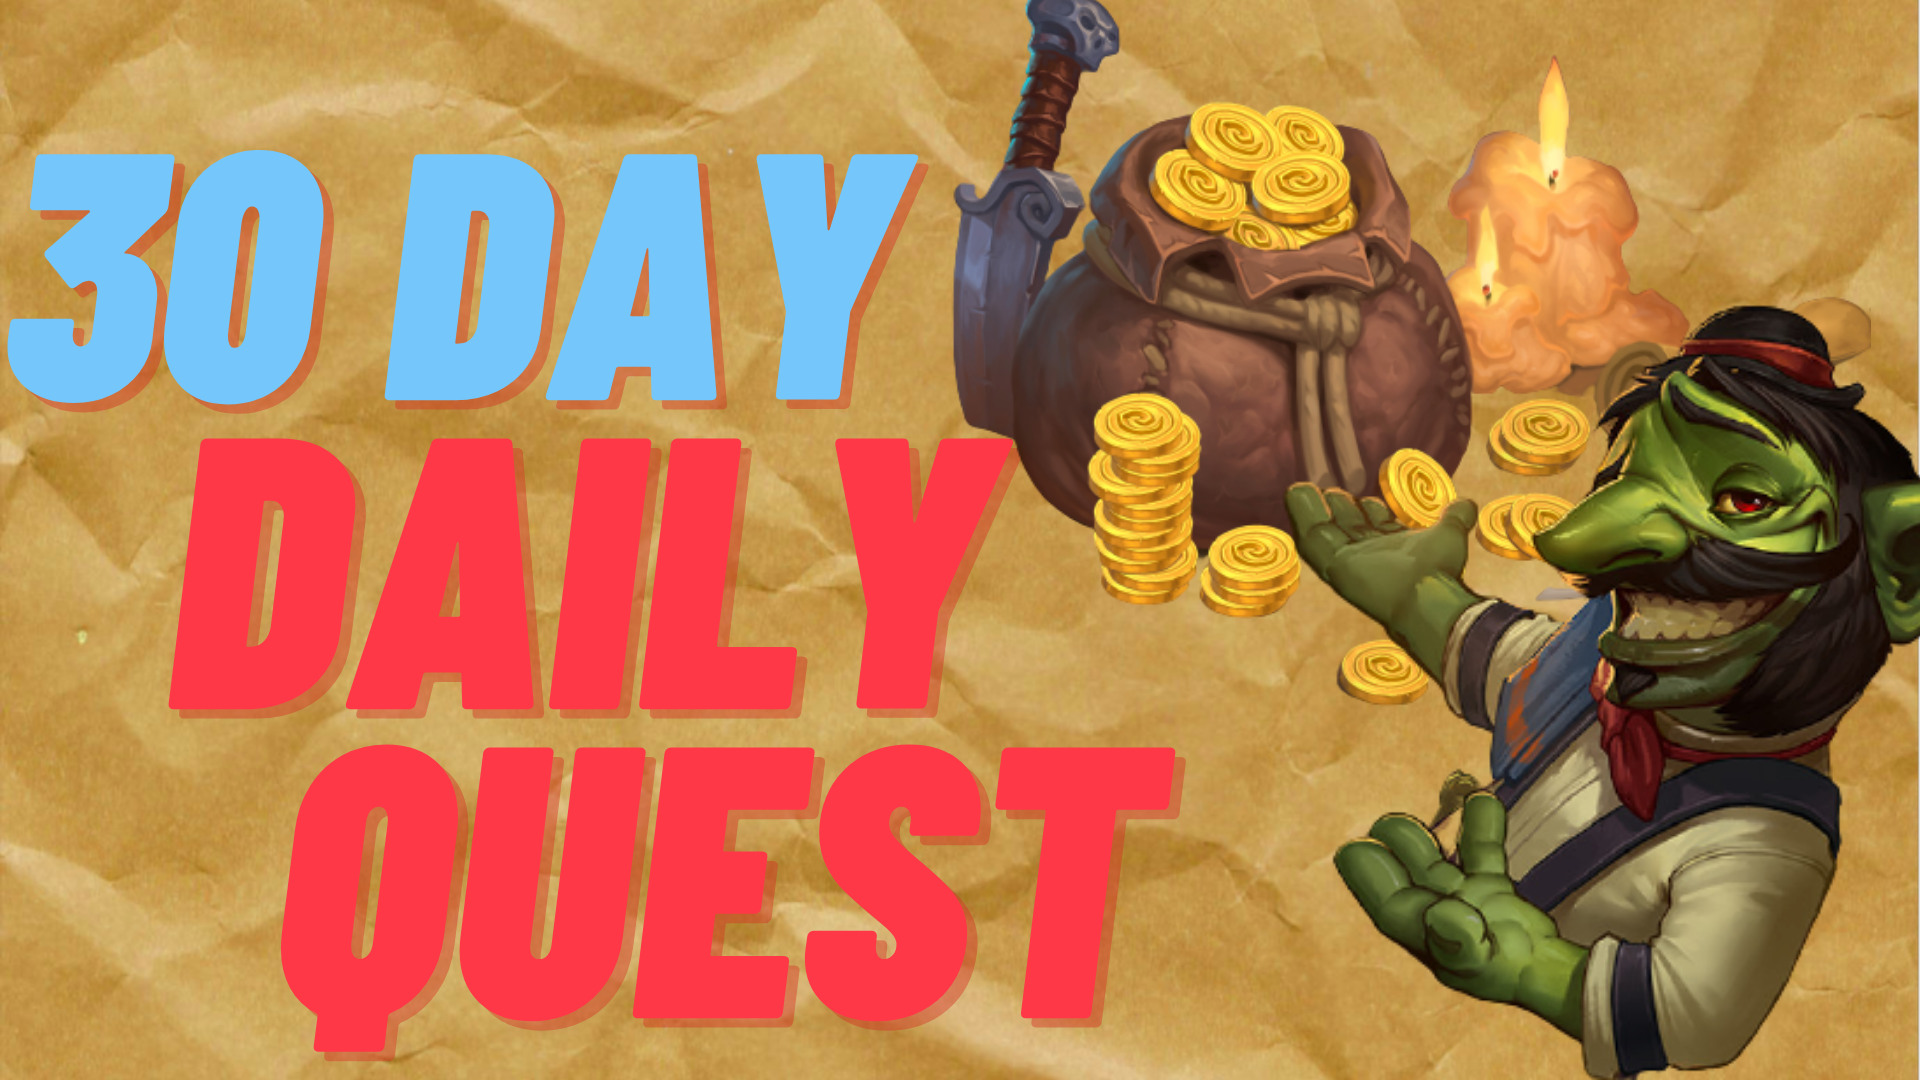 30-Day Daily Quests Zafari - e2p.com